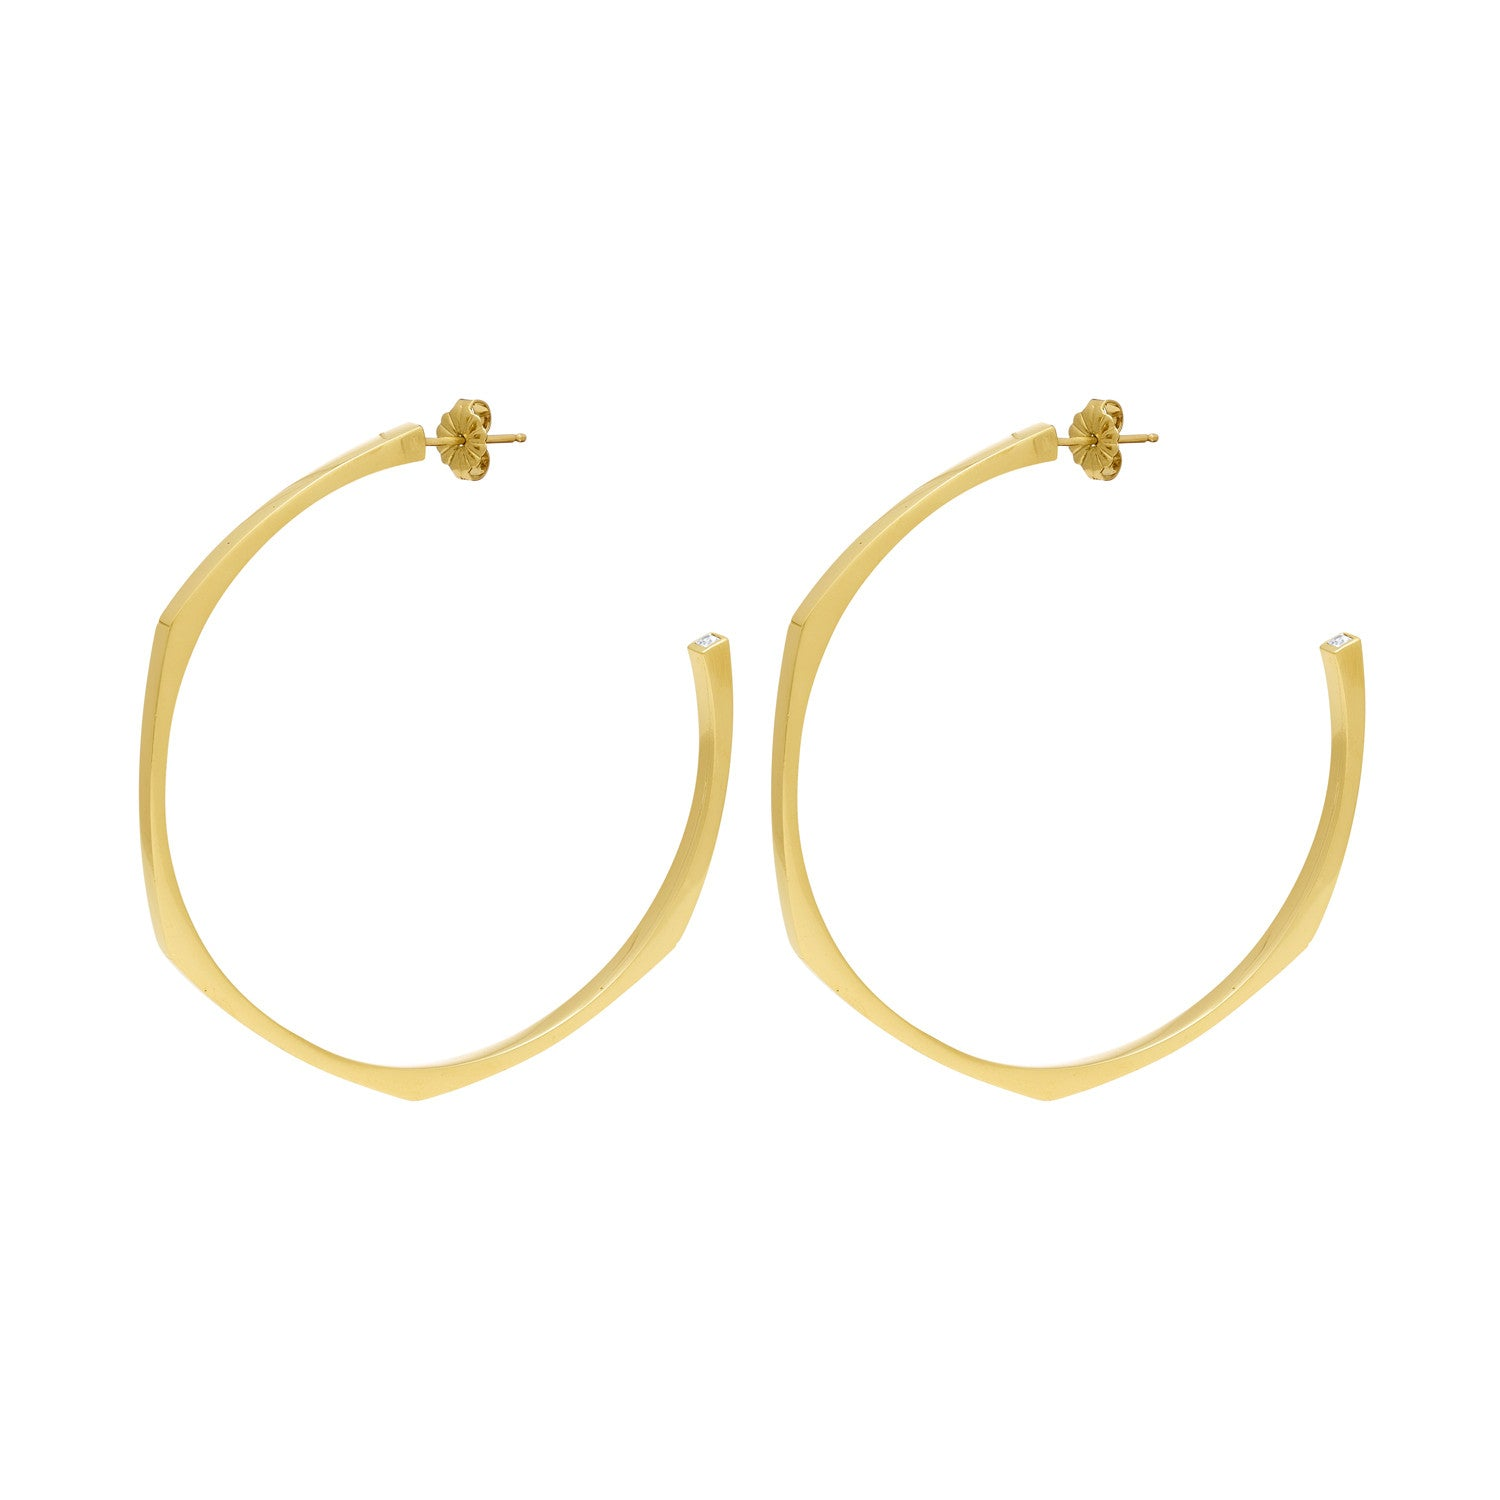 Coco\'s Liberty: Bolt hoops | Jewelry -  Hiphunters Shop